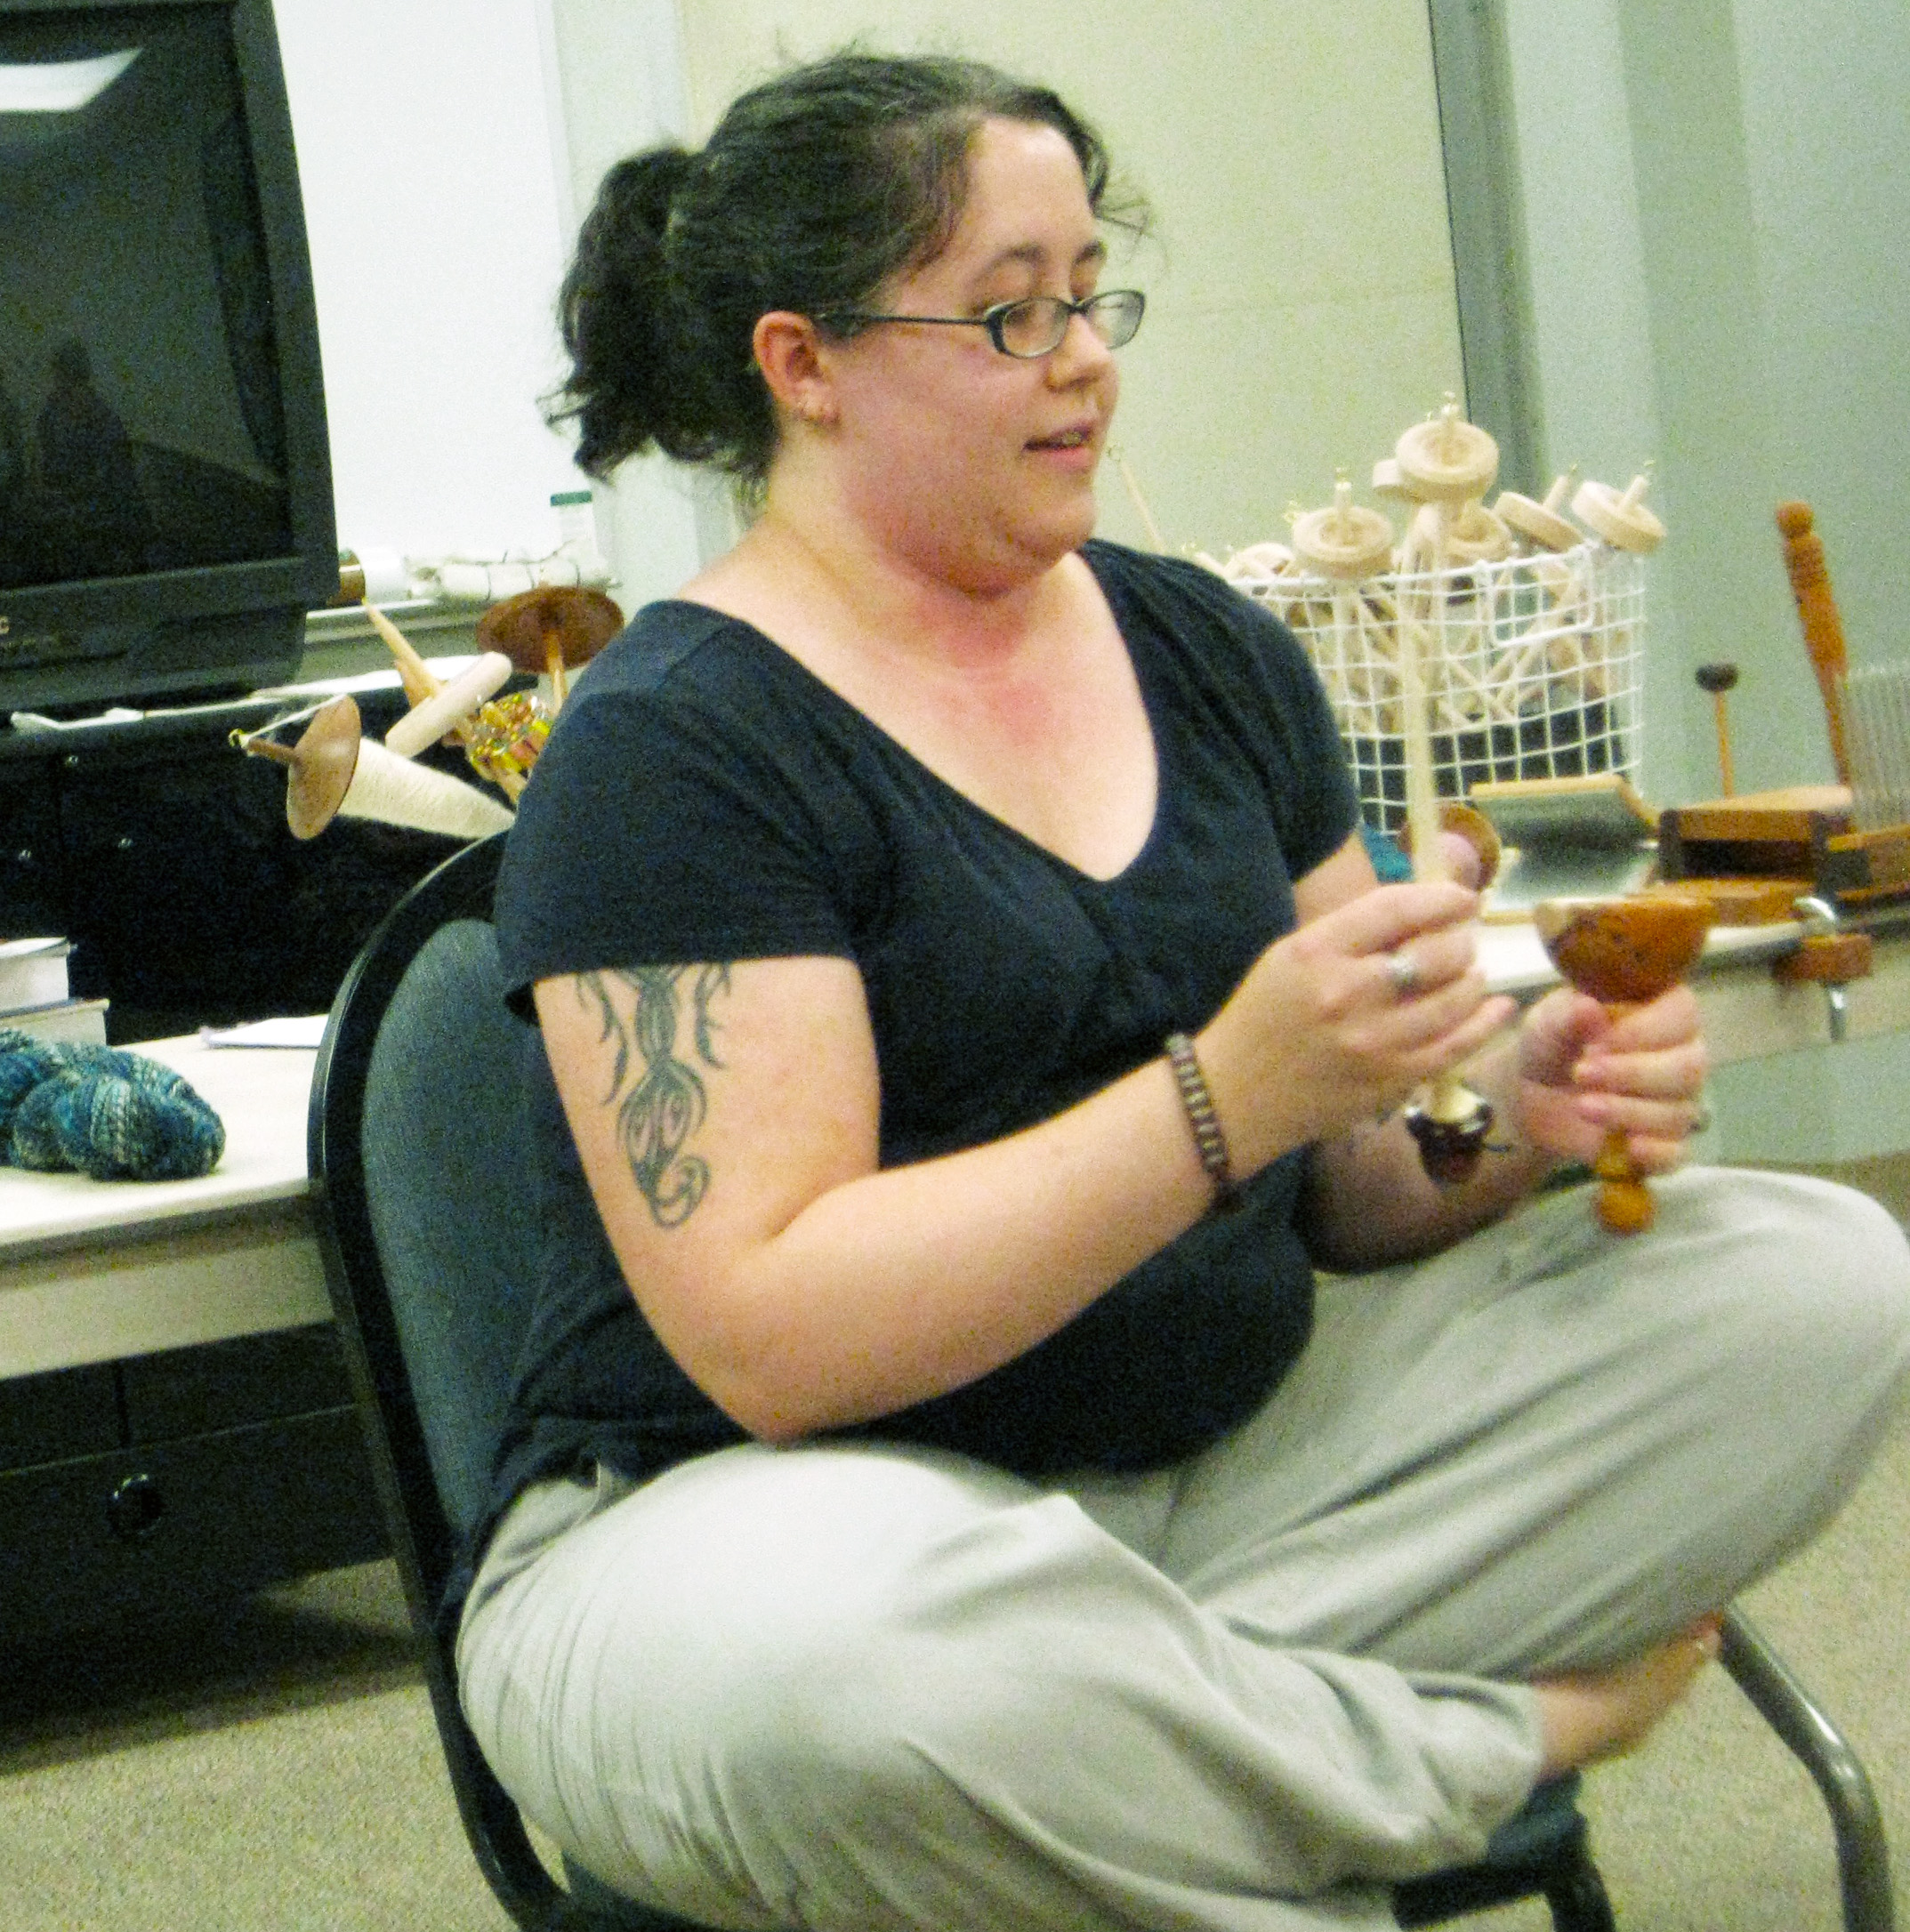 Holly demonstrates using a drop spindle